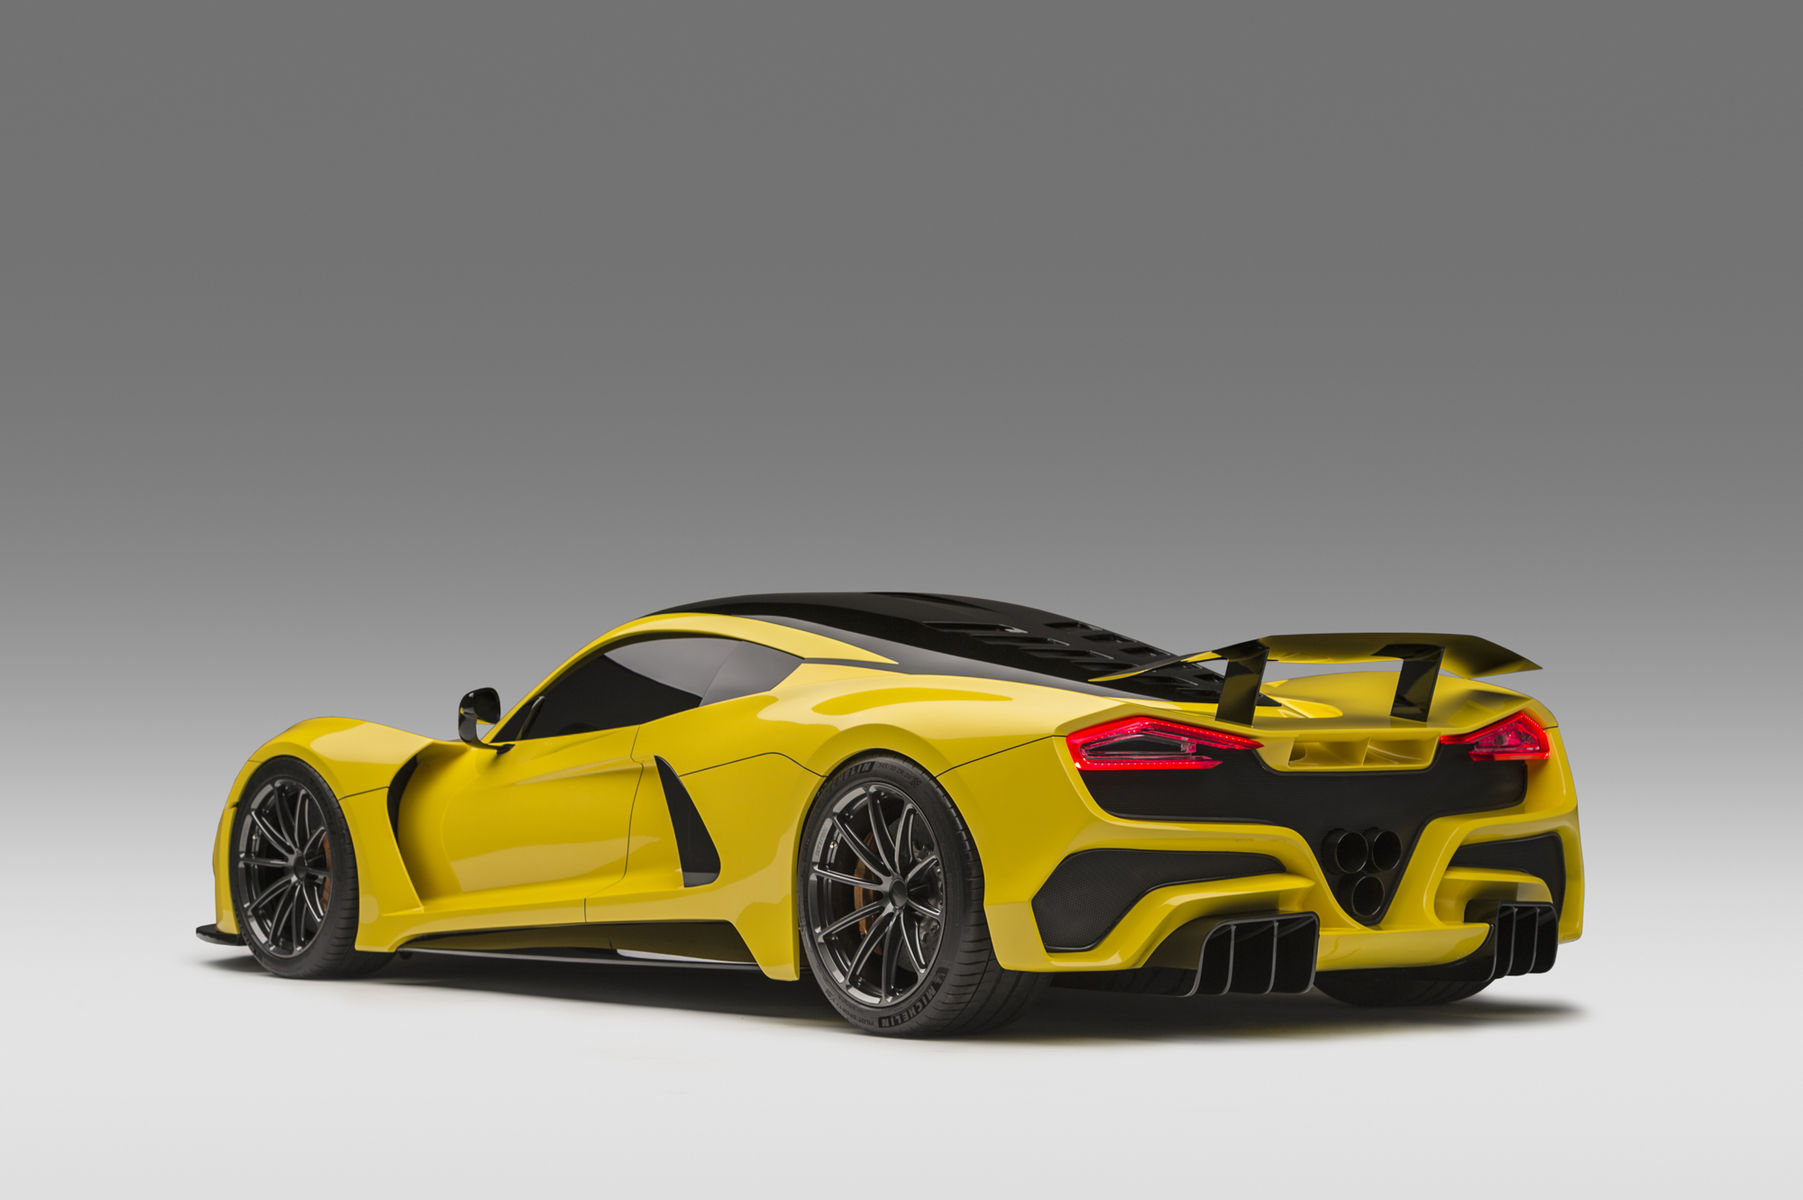 2018 Hennessey  | Hennessey Venom F5 Hypercar Debuts at Geneva on Forgeline One Piece Forged Monoblock GT1 5-Lug Wheels